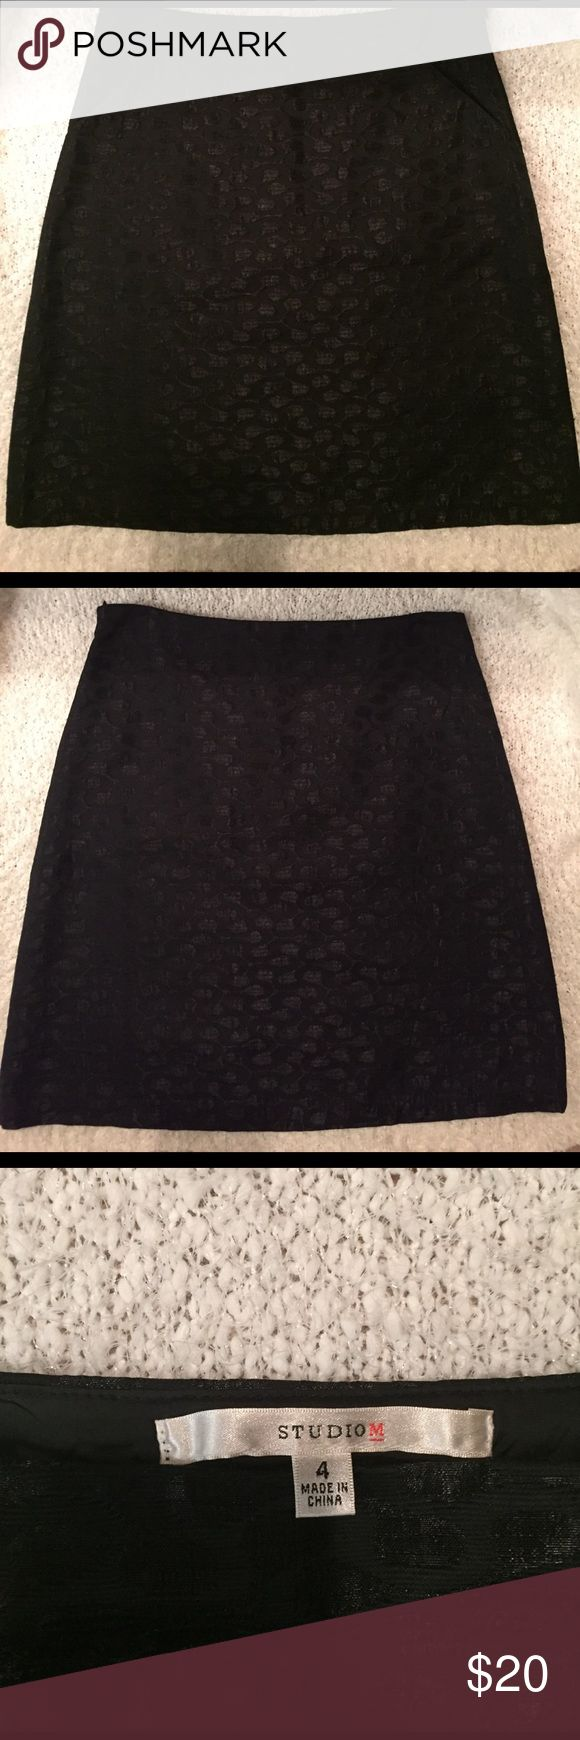 Studio M skirt Beautiful black skirt with unique pattern detail perfect for work or going out. Fits like Pencil skirt but not very tight on hips. Never worn because it's not my size. Studio M Skirts Pencil